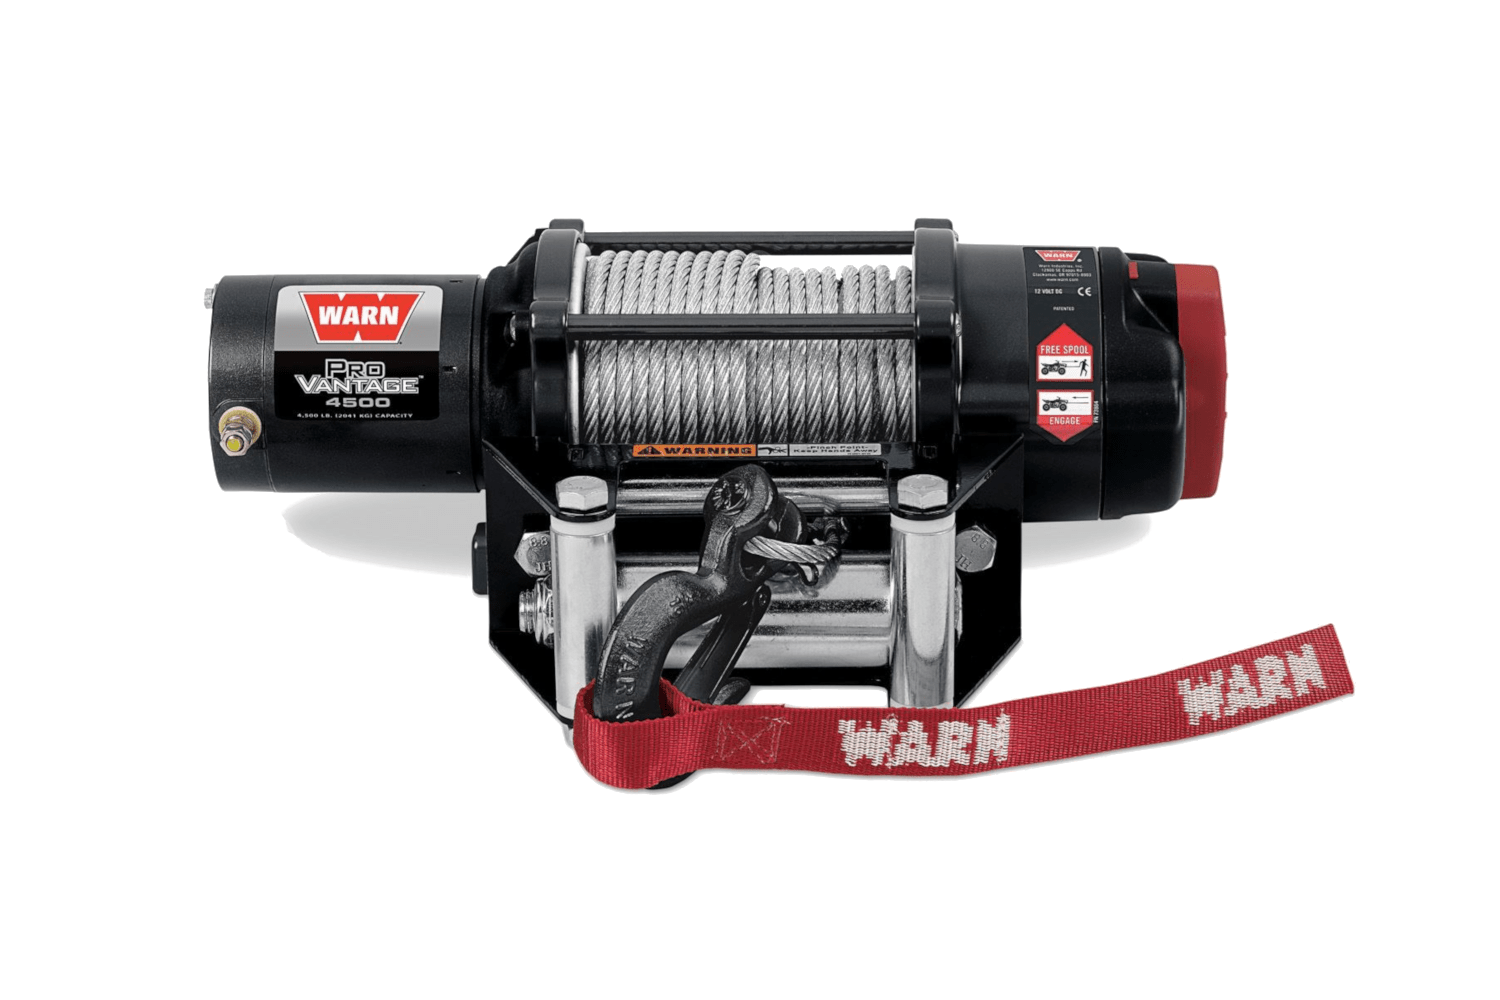 warn powersports provantage 4500 90450